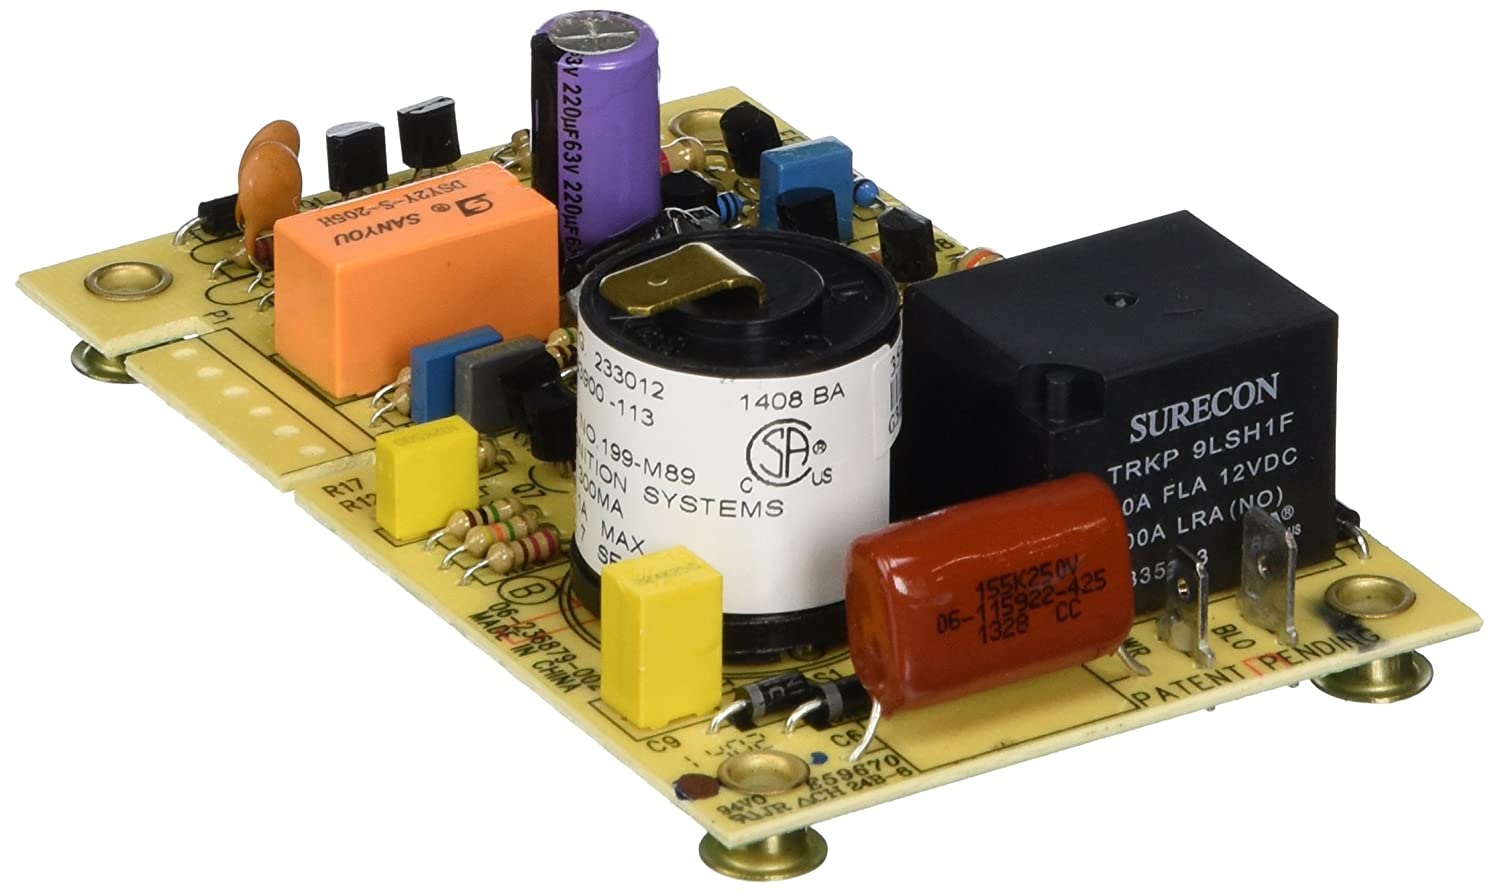 Suburban Sb521099 3g Furnace Fan Control Board Automotive Motorhome Propane Wiring Diagram